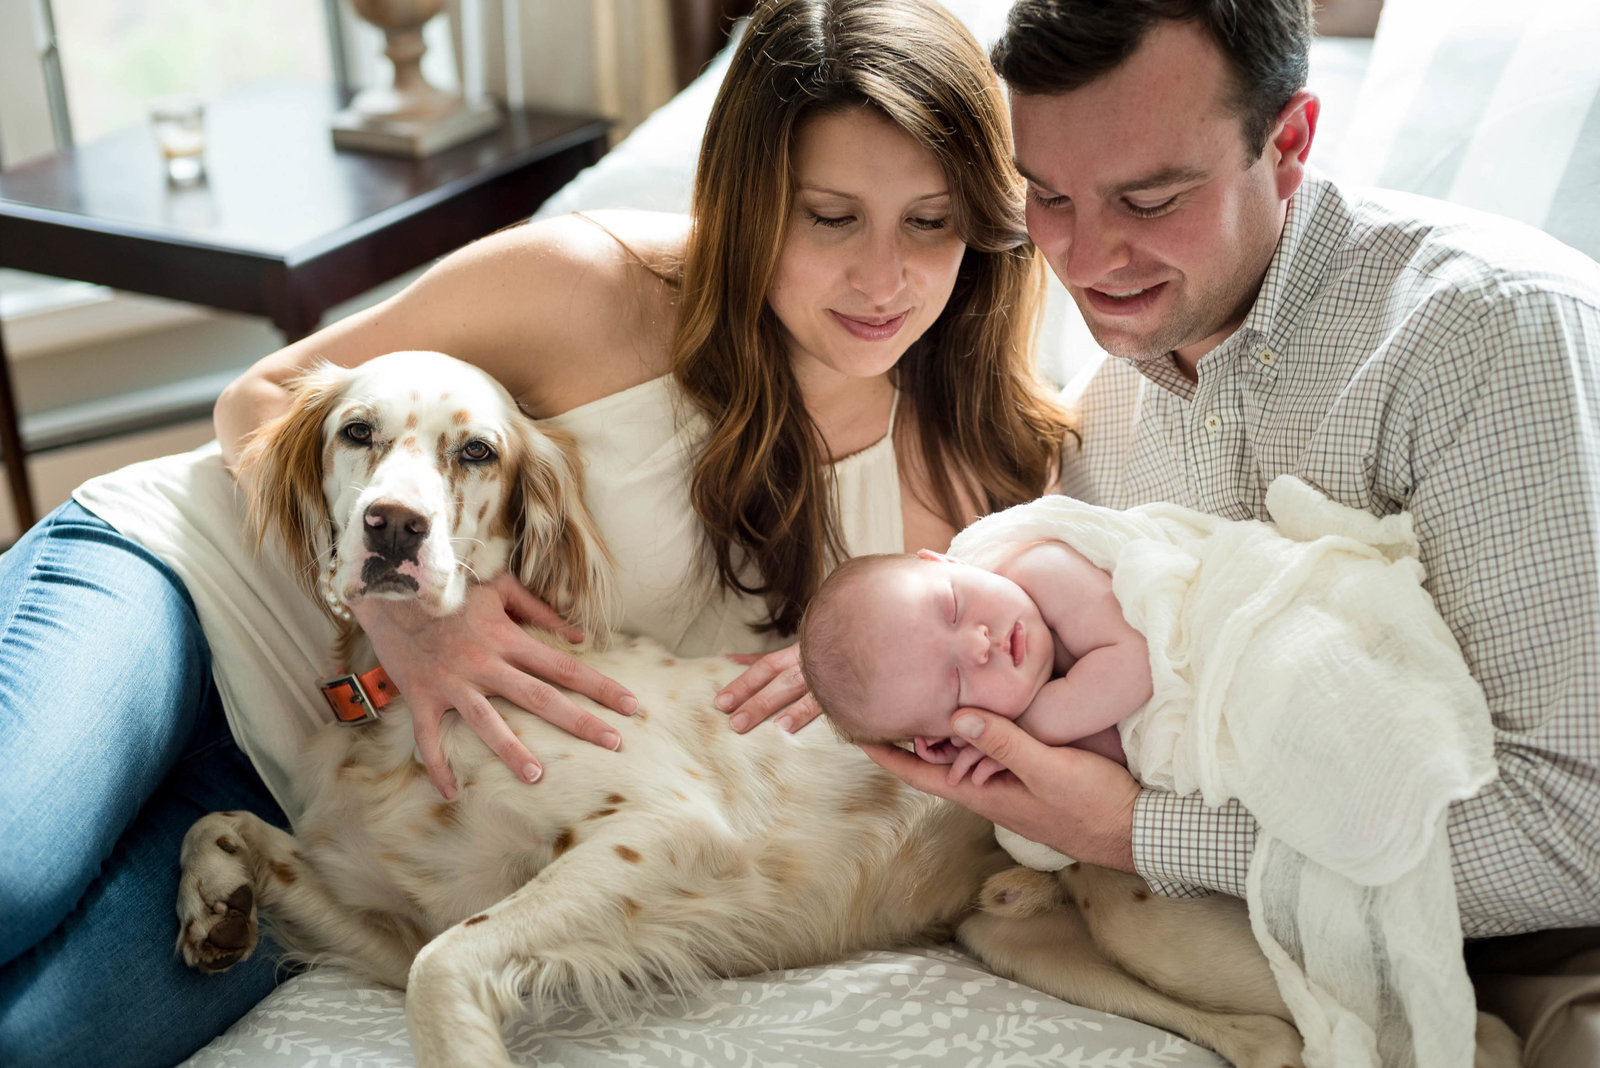 Boston-Newborn-Photographer-Lifestyle-Documentary-Home-Styled-Session-374